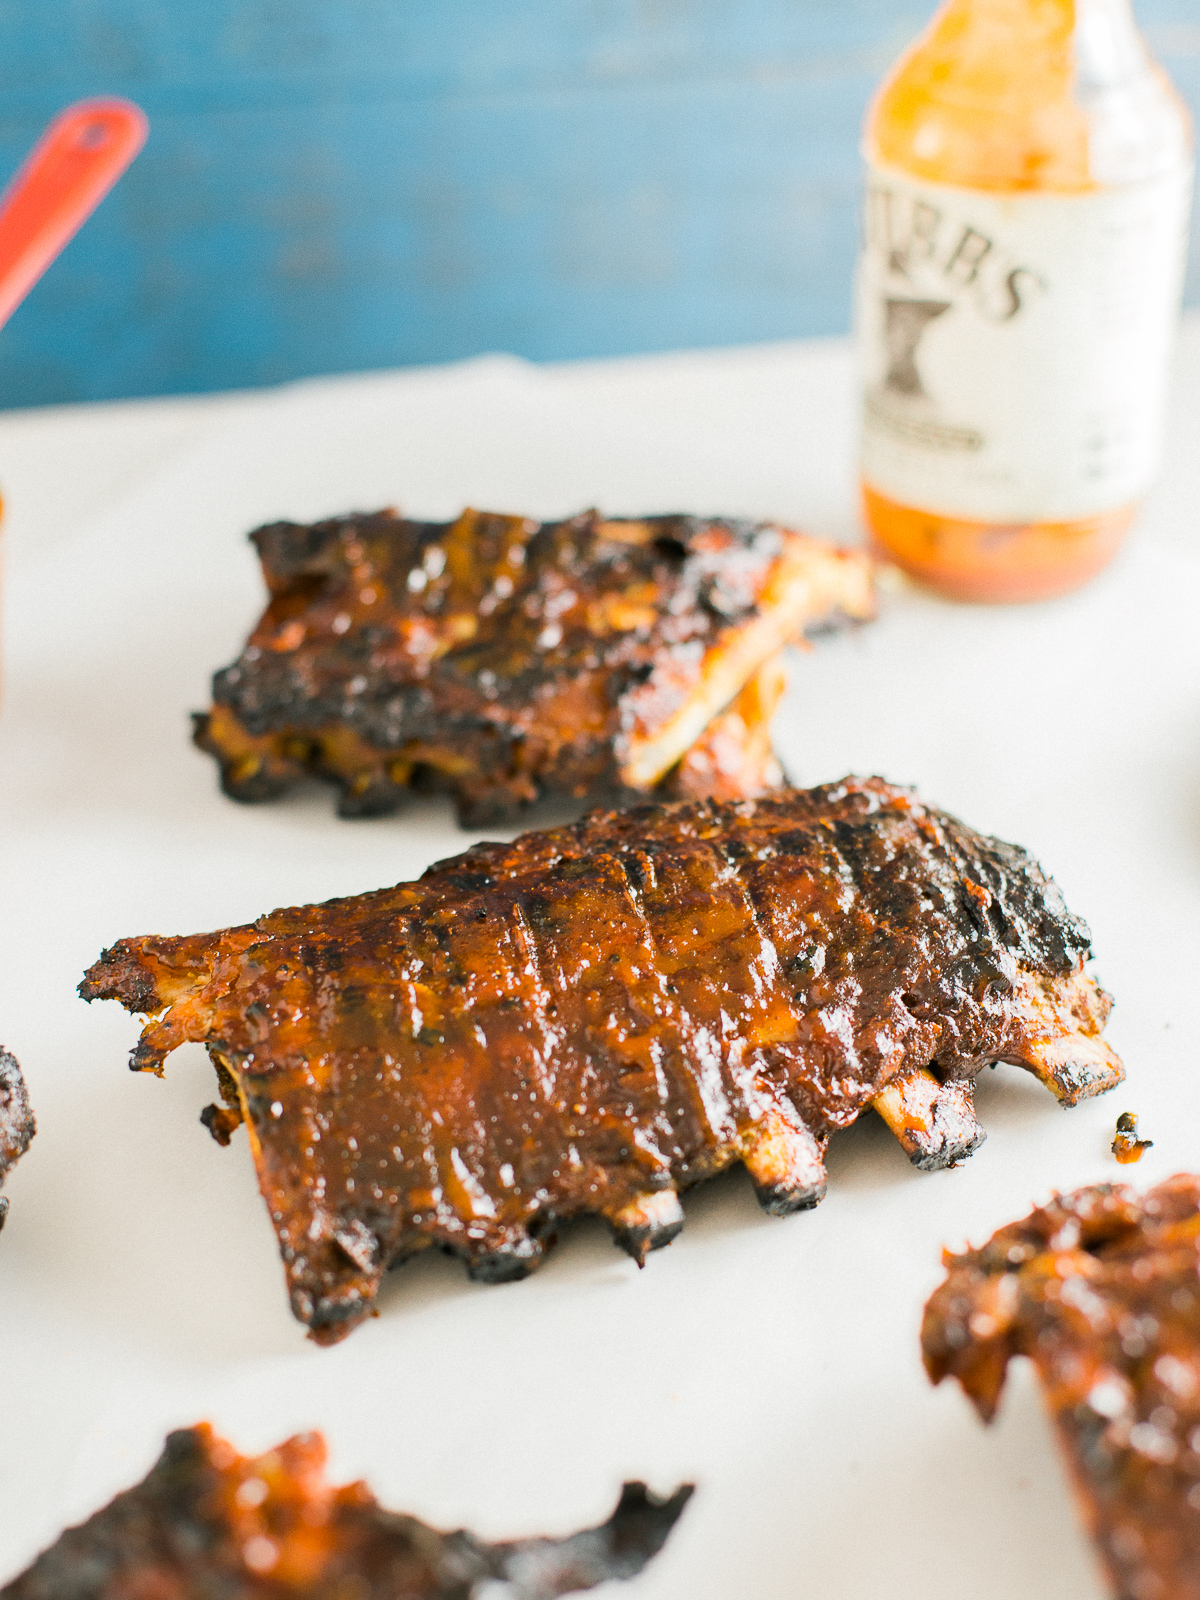 Hot barbecue sauce recipe for ribs